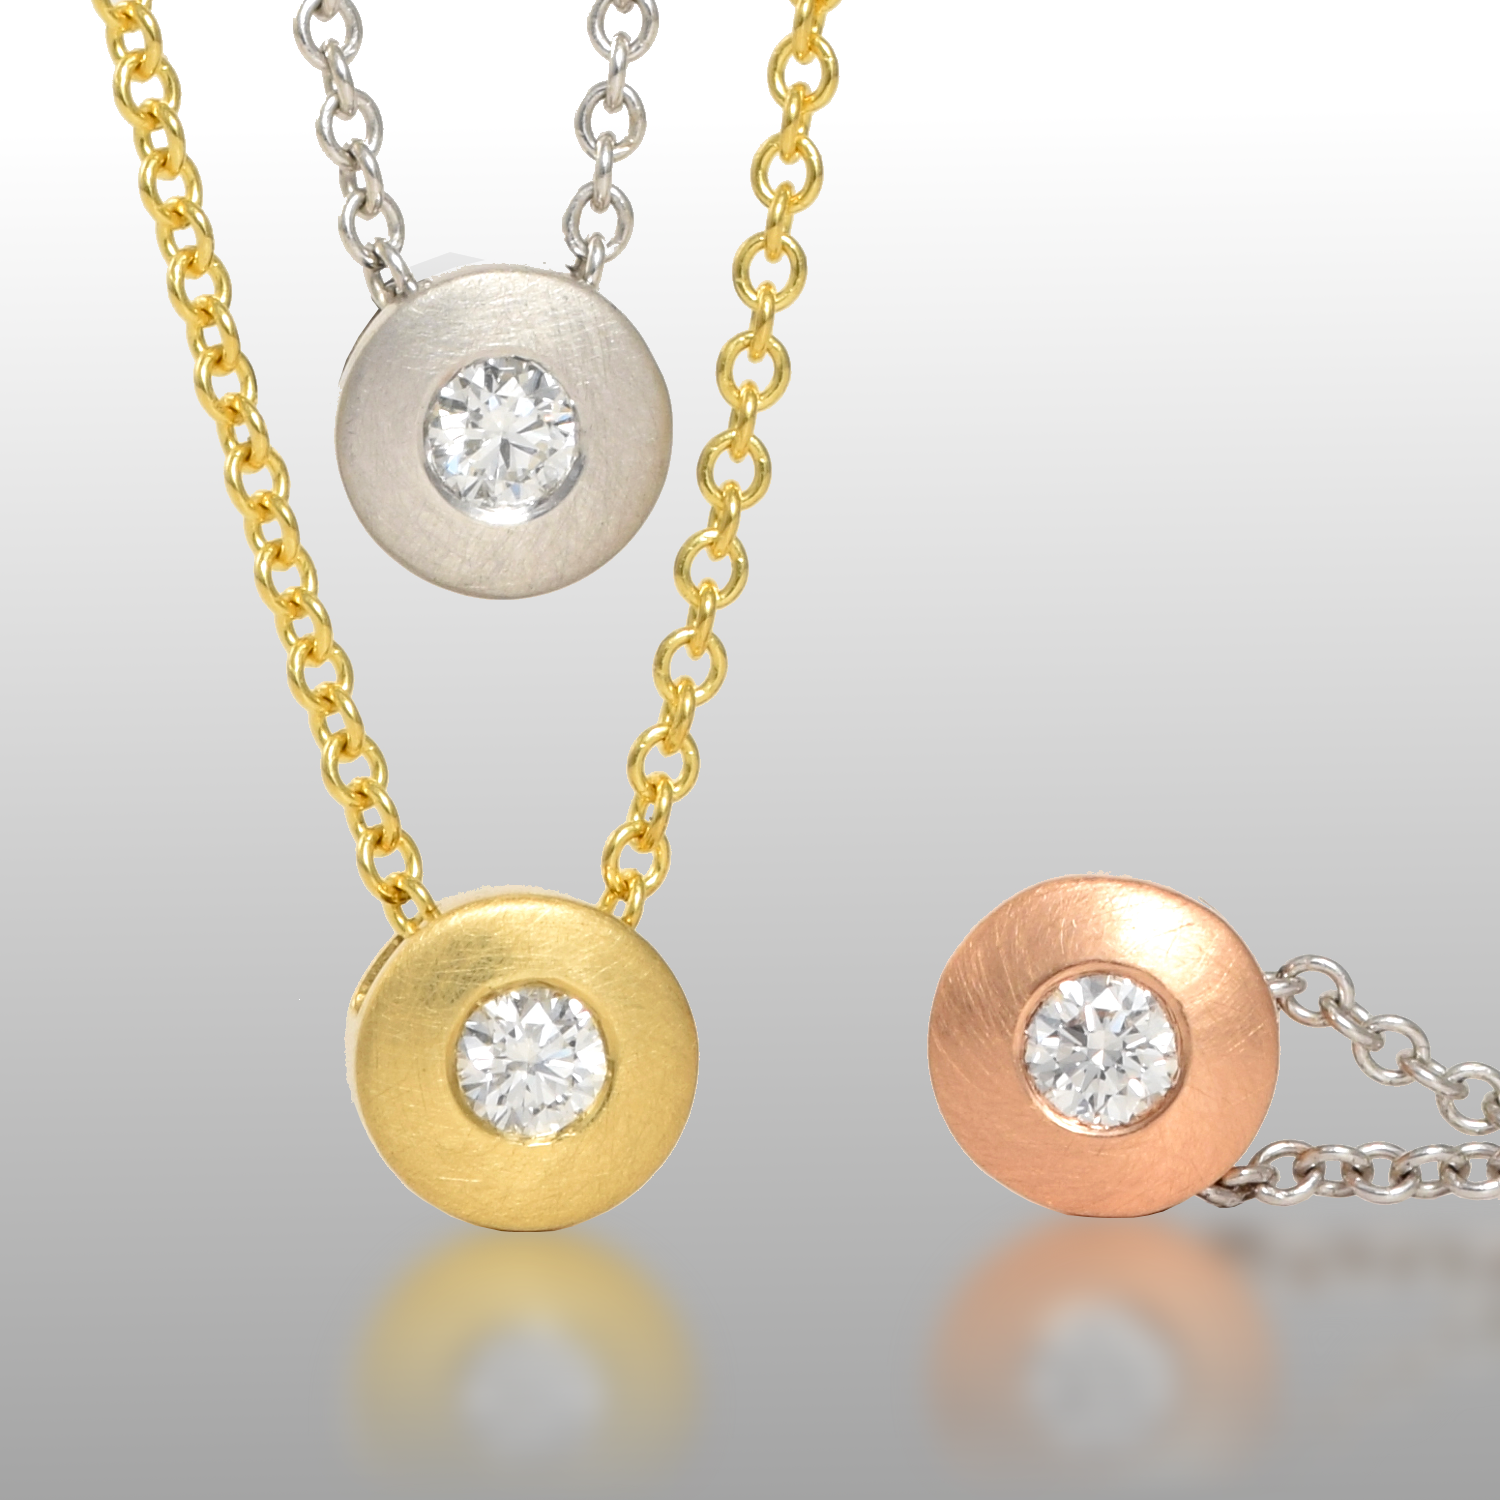 Petite Diamond Solitaire Necklace in 18k Yellow, Rose or White Gold or Platinum by Pratima Design Fine Art Jewelry Maui